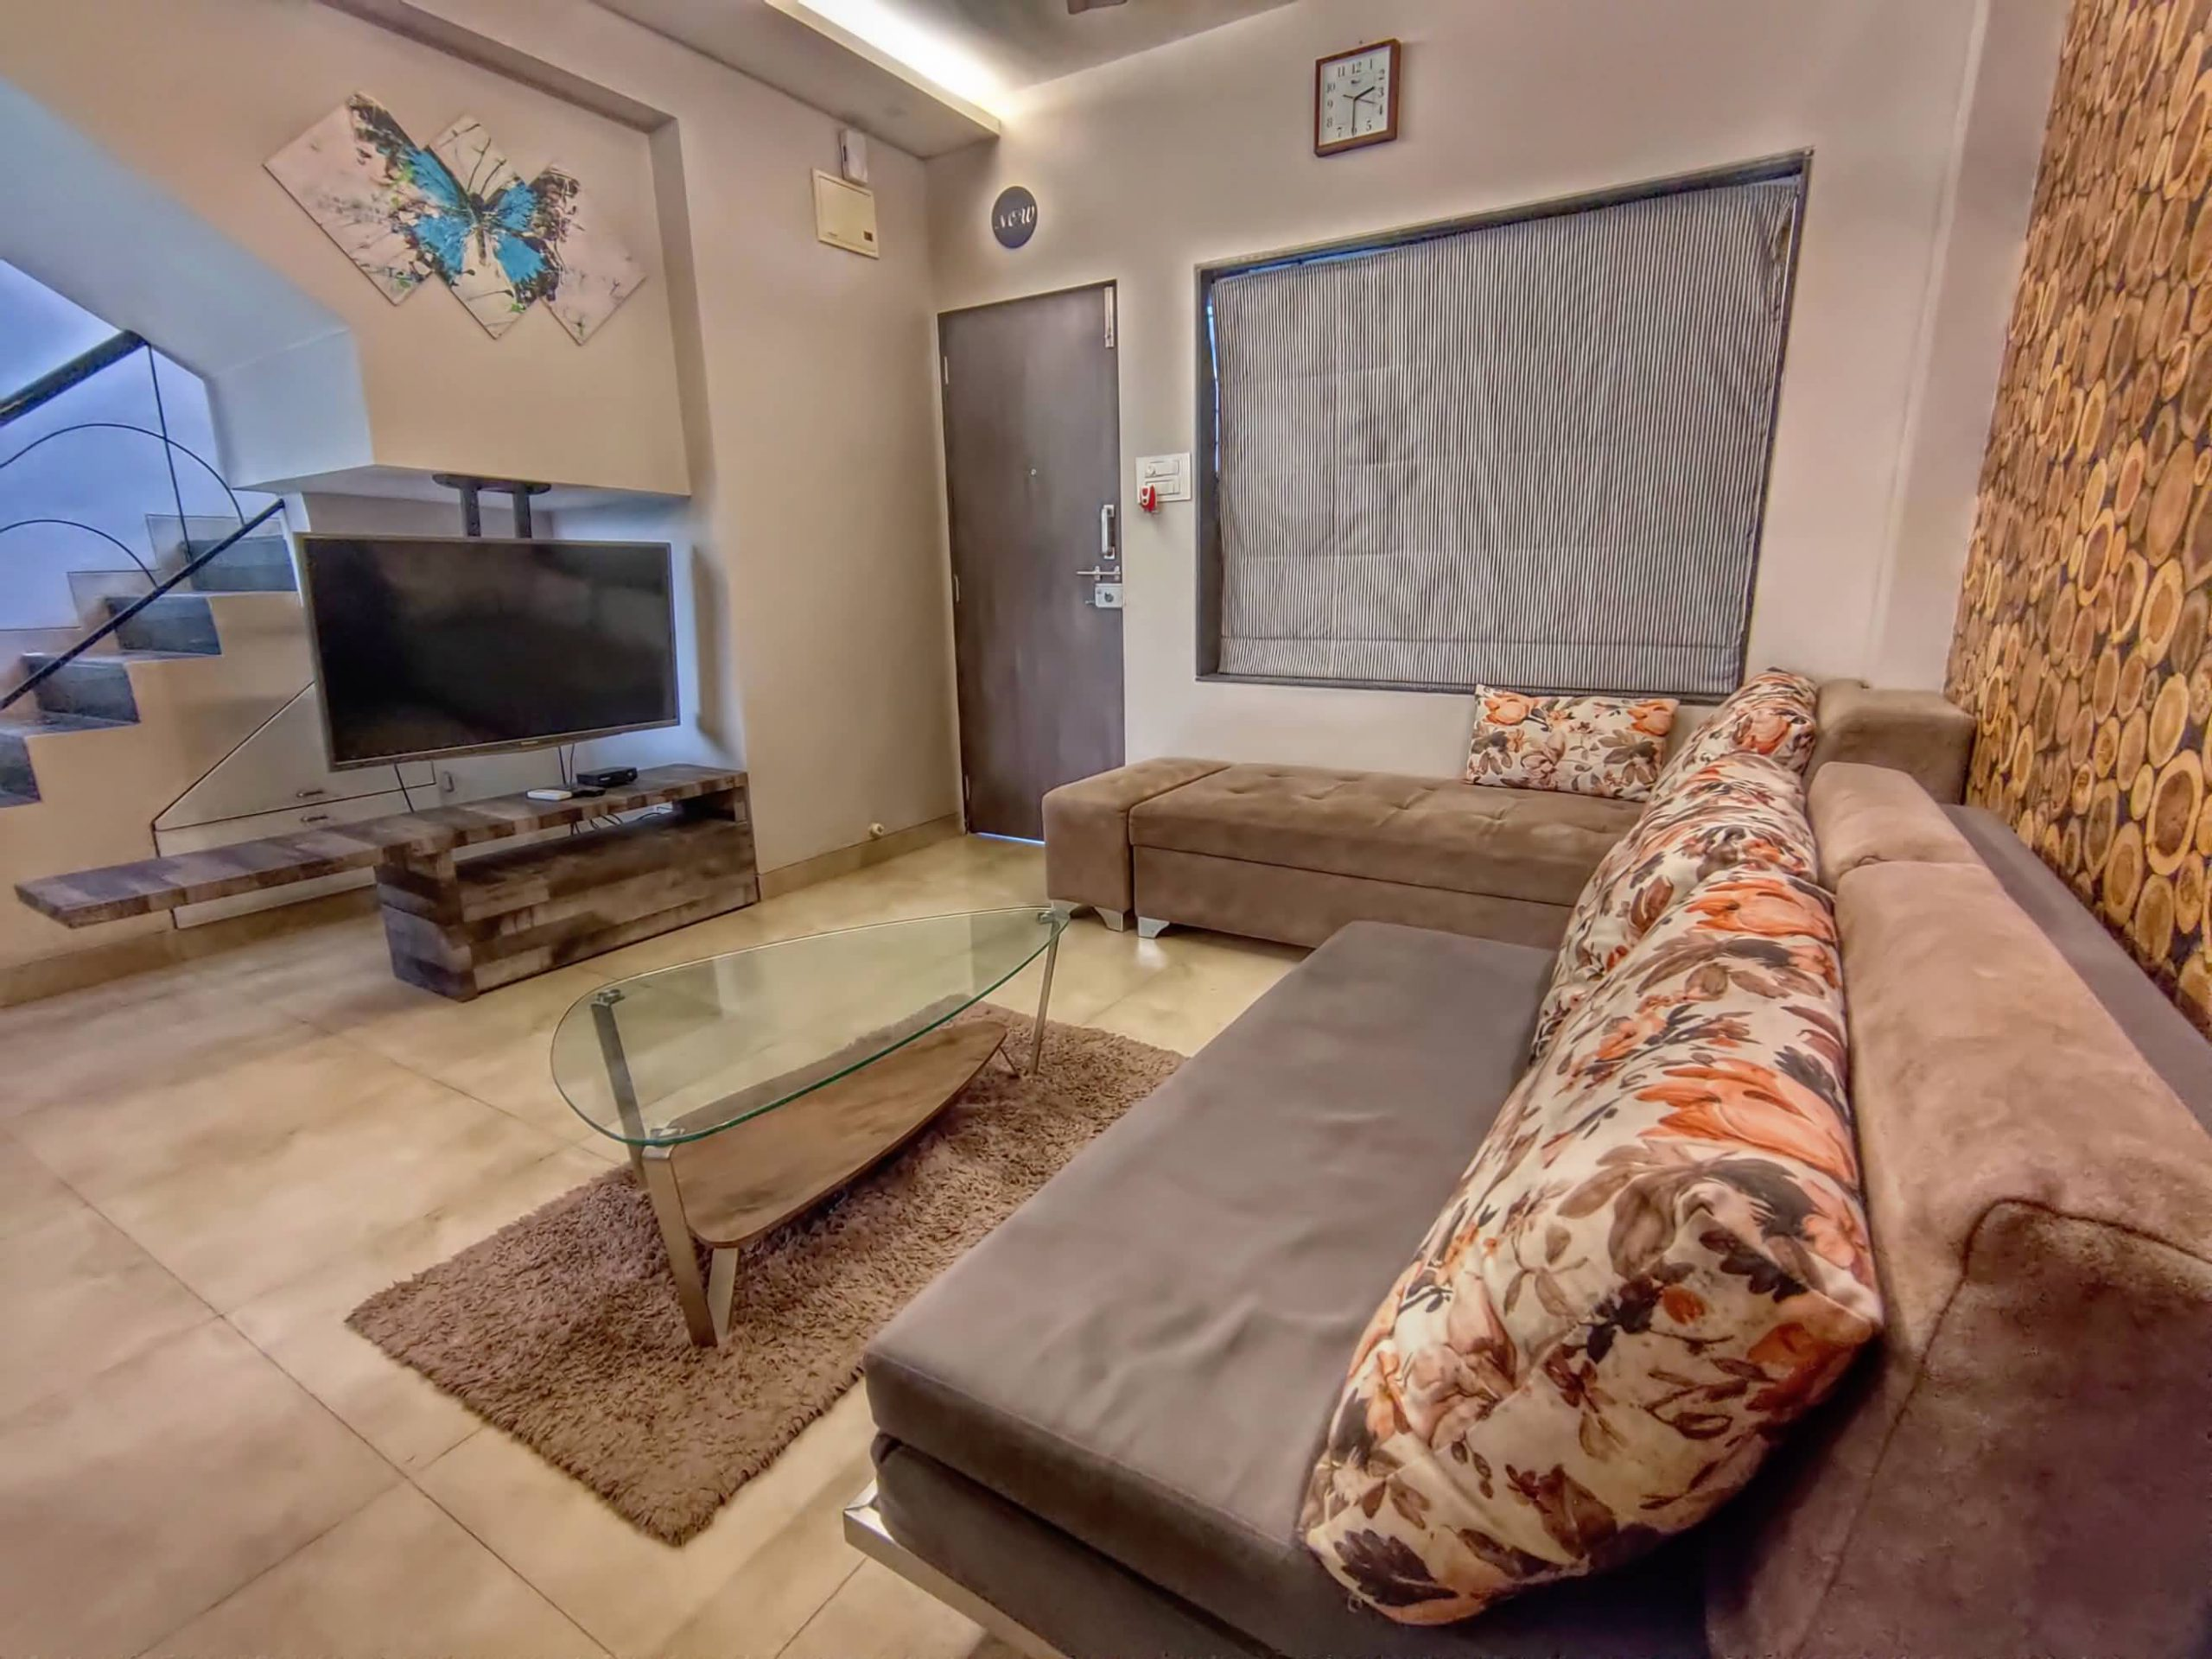 HAVE Villa 12 - Living room with LED TV.